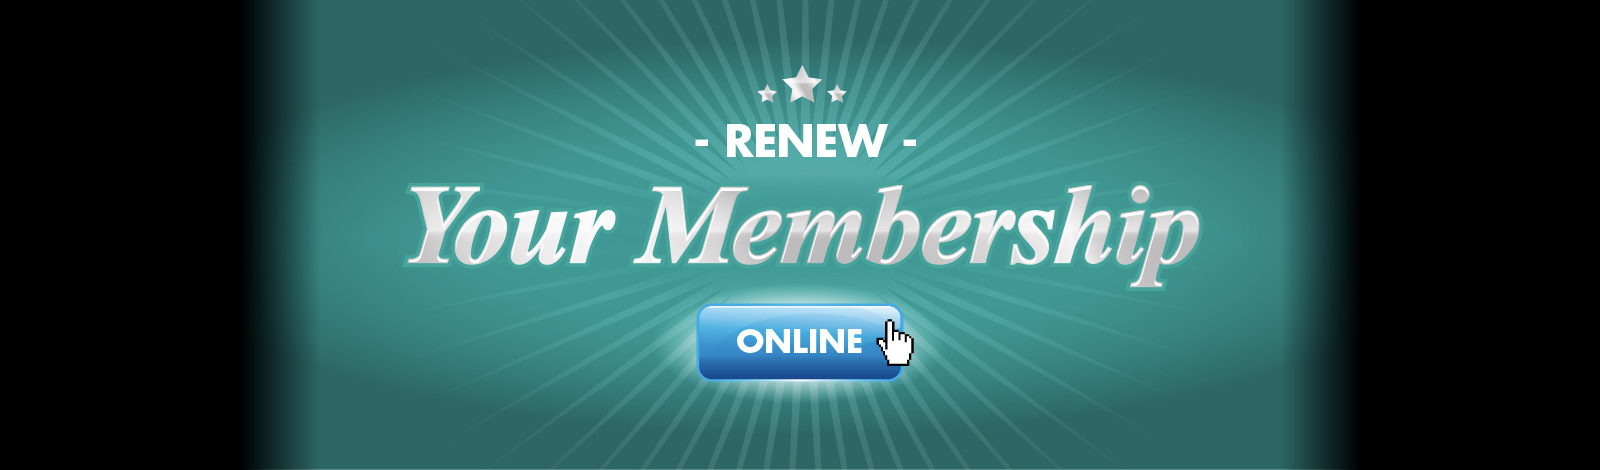 Renew your Membership Online